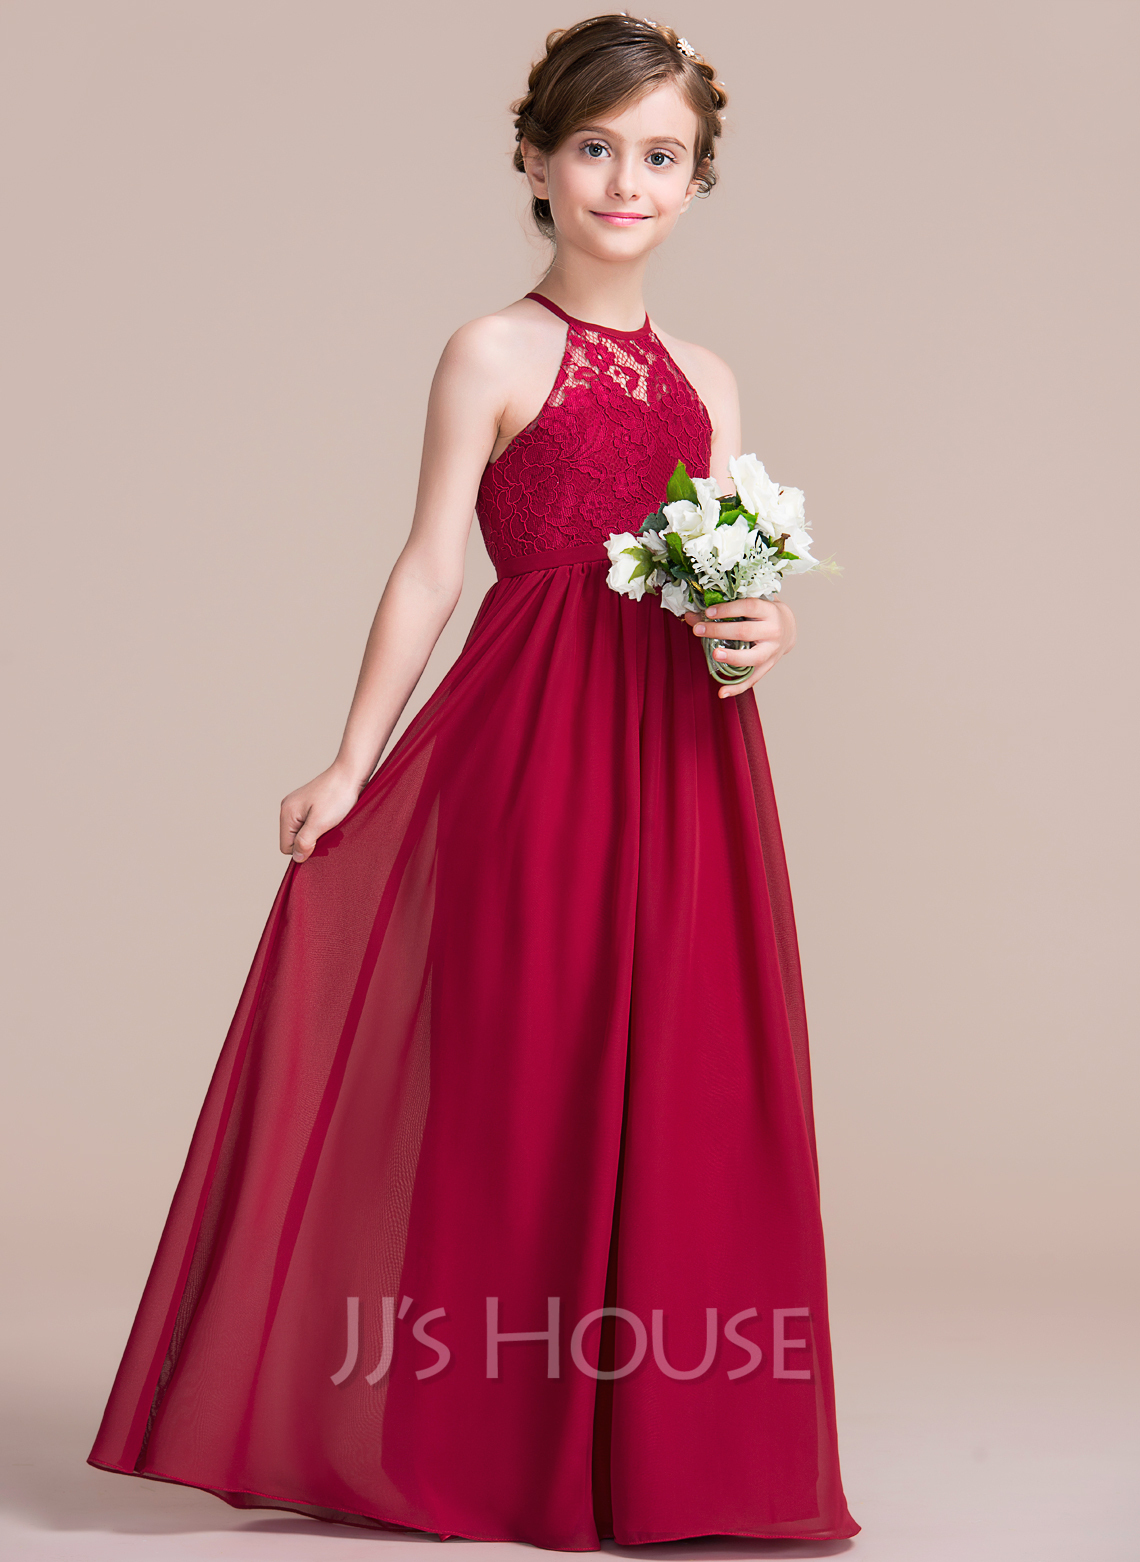 A lineprincess scoop neck floor length chiffon junior bridesmaid a lineprincess scoop neck floor length chiffon junior bridesmaid dress loading zoom ombrellifo Image collections